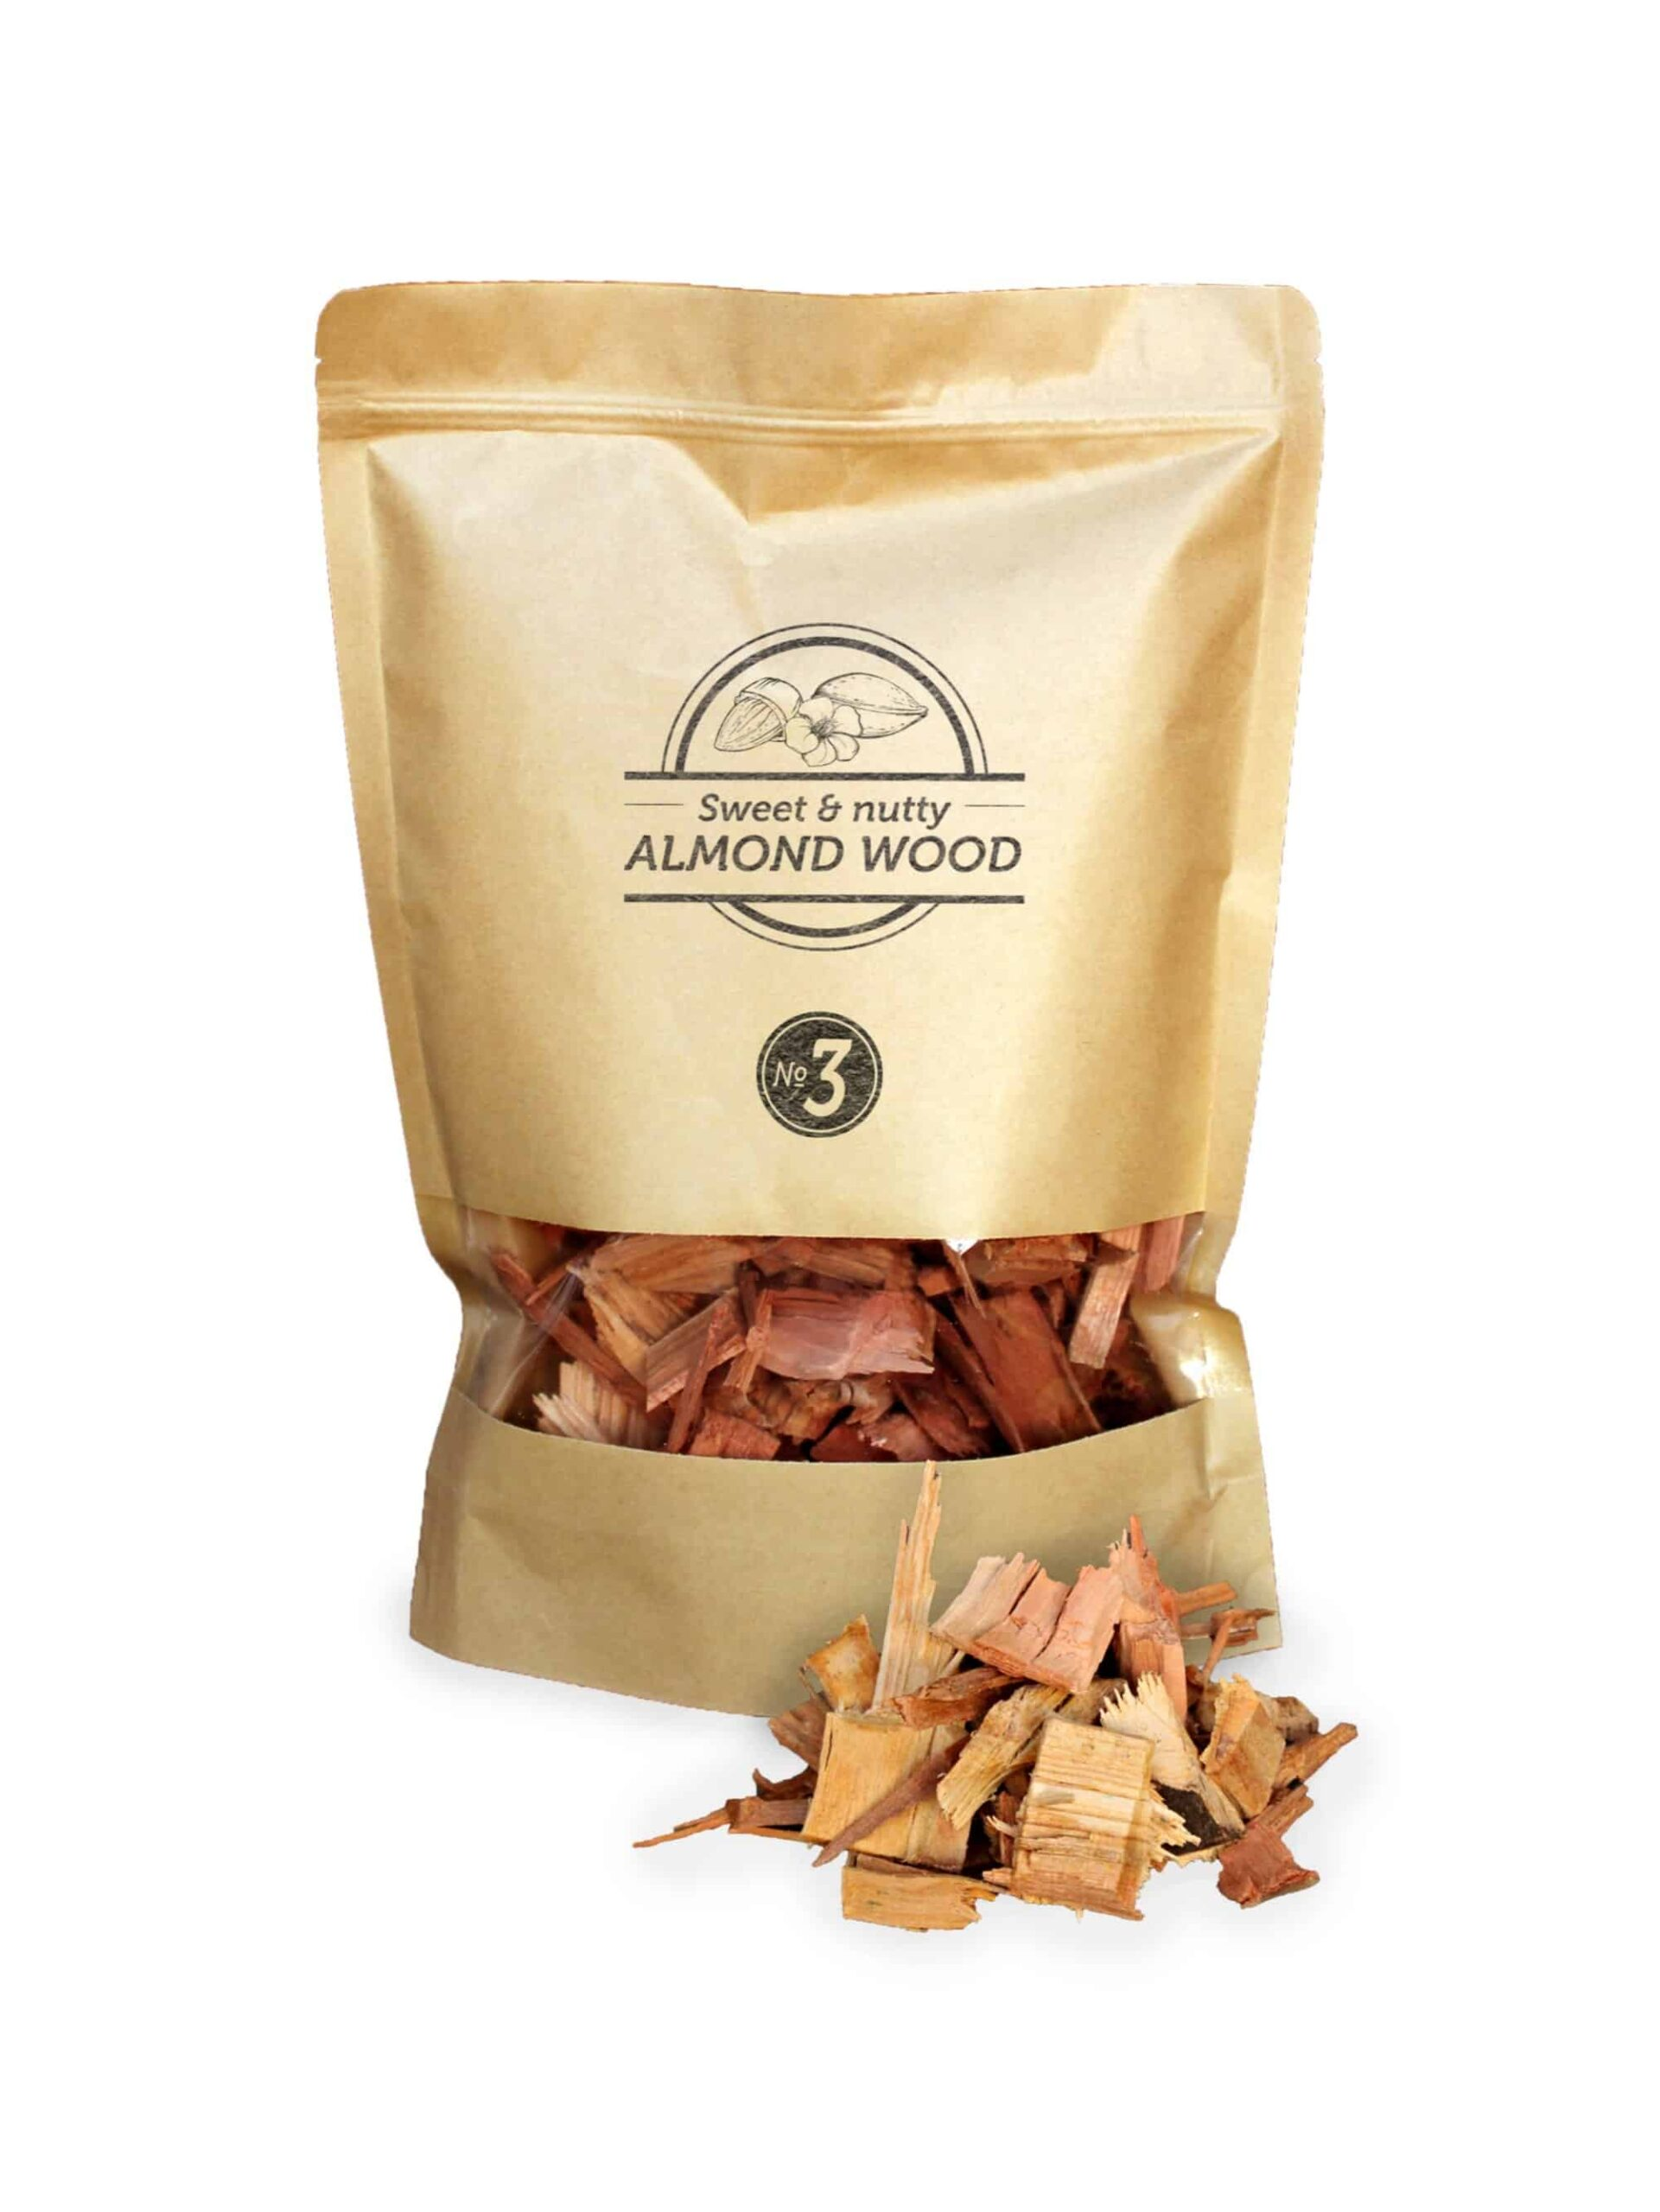 SOW almond chips